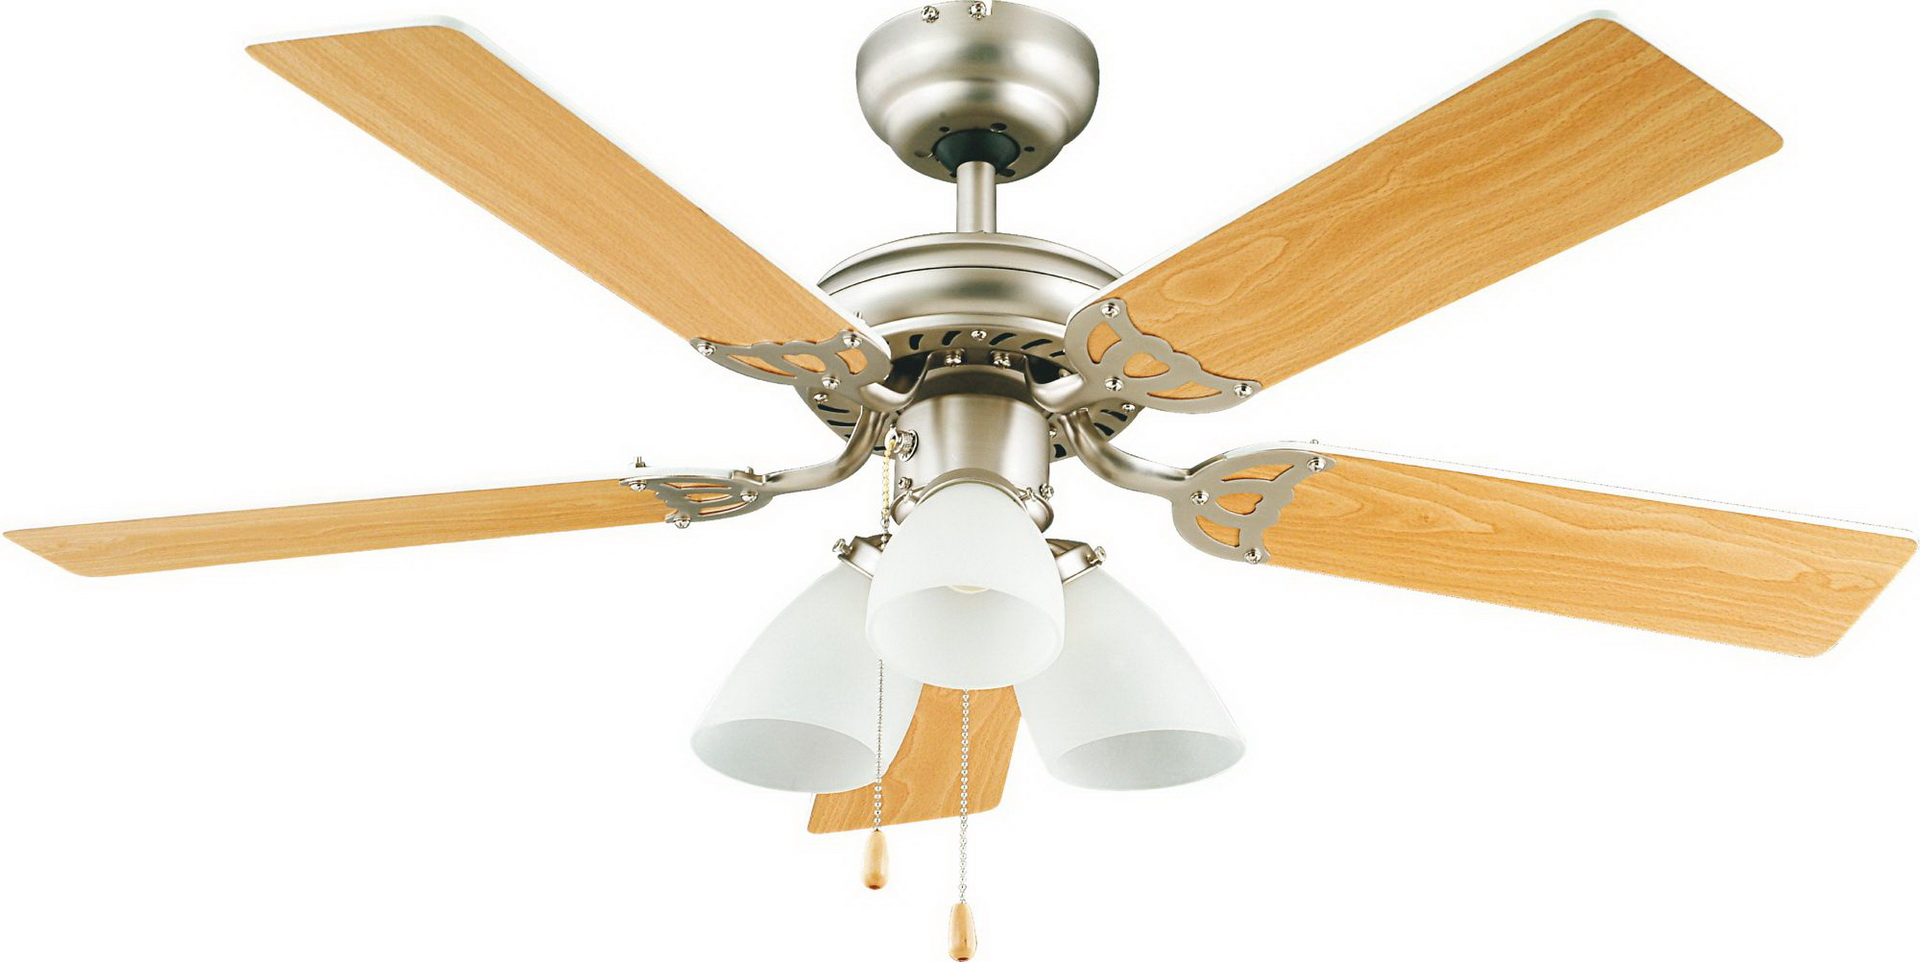 Bathroom Lights Homebase homebase ceiling fans - 13 methods perfect choices to cool up your